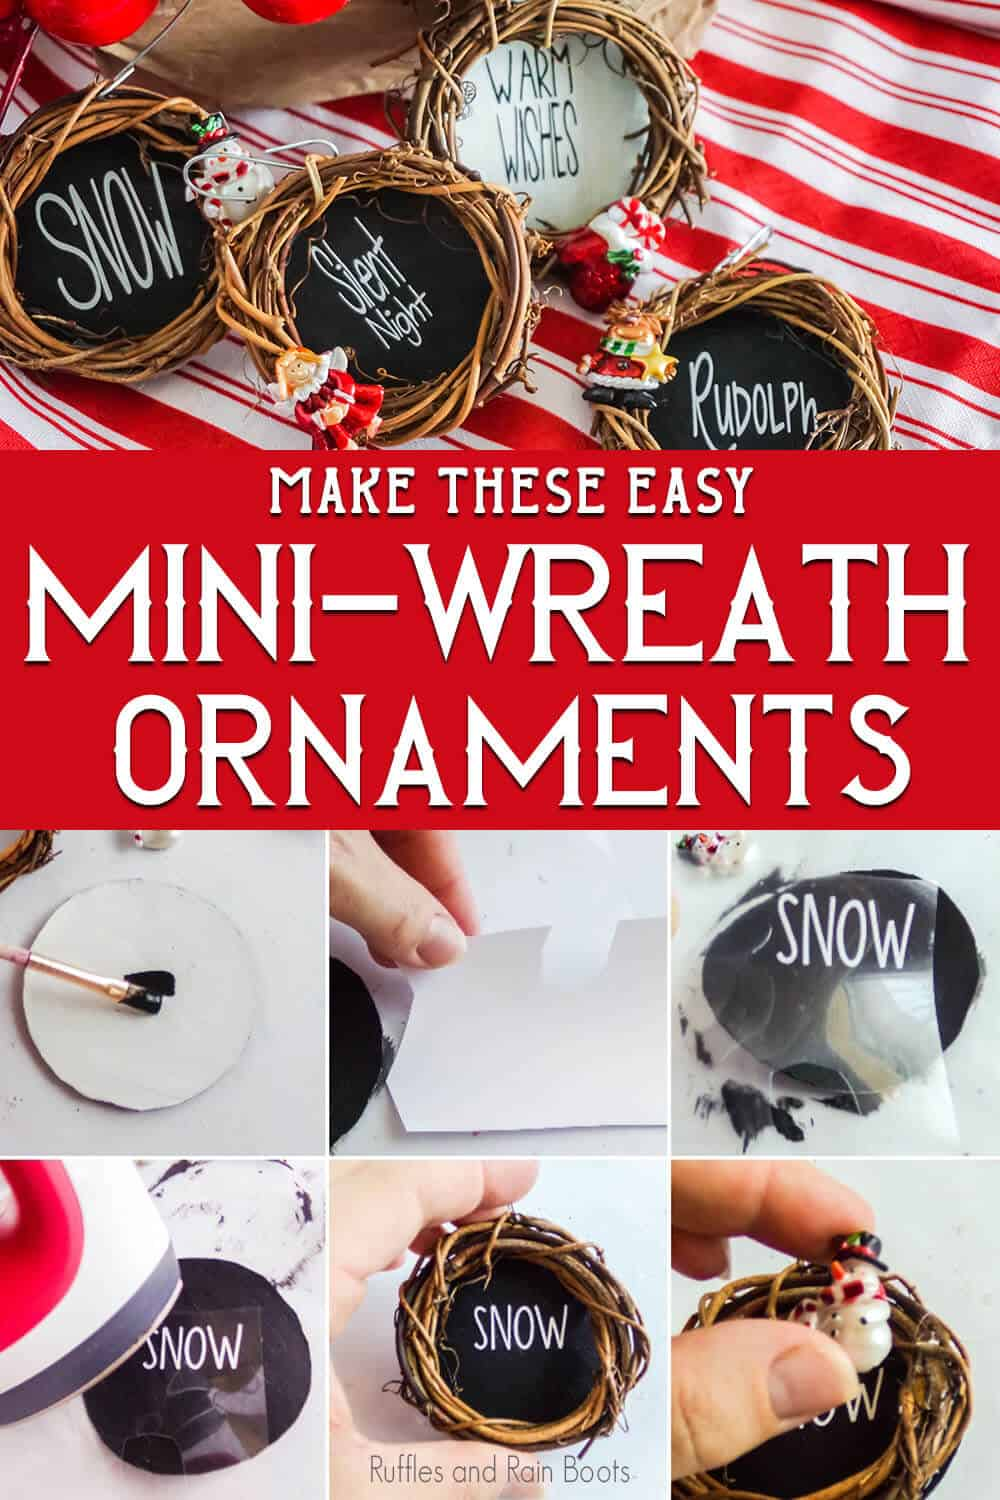 DIY christmas ornaments with text which reads make these easy mini-wreath ornaments